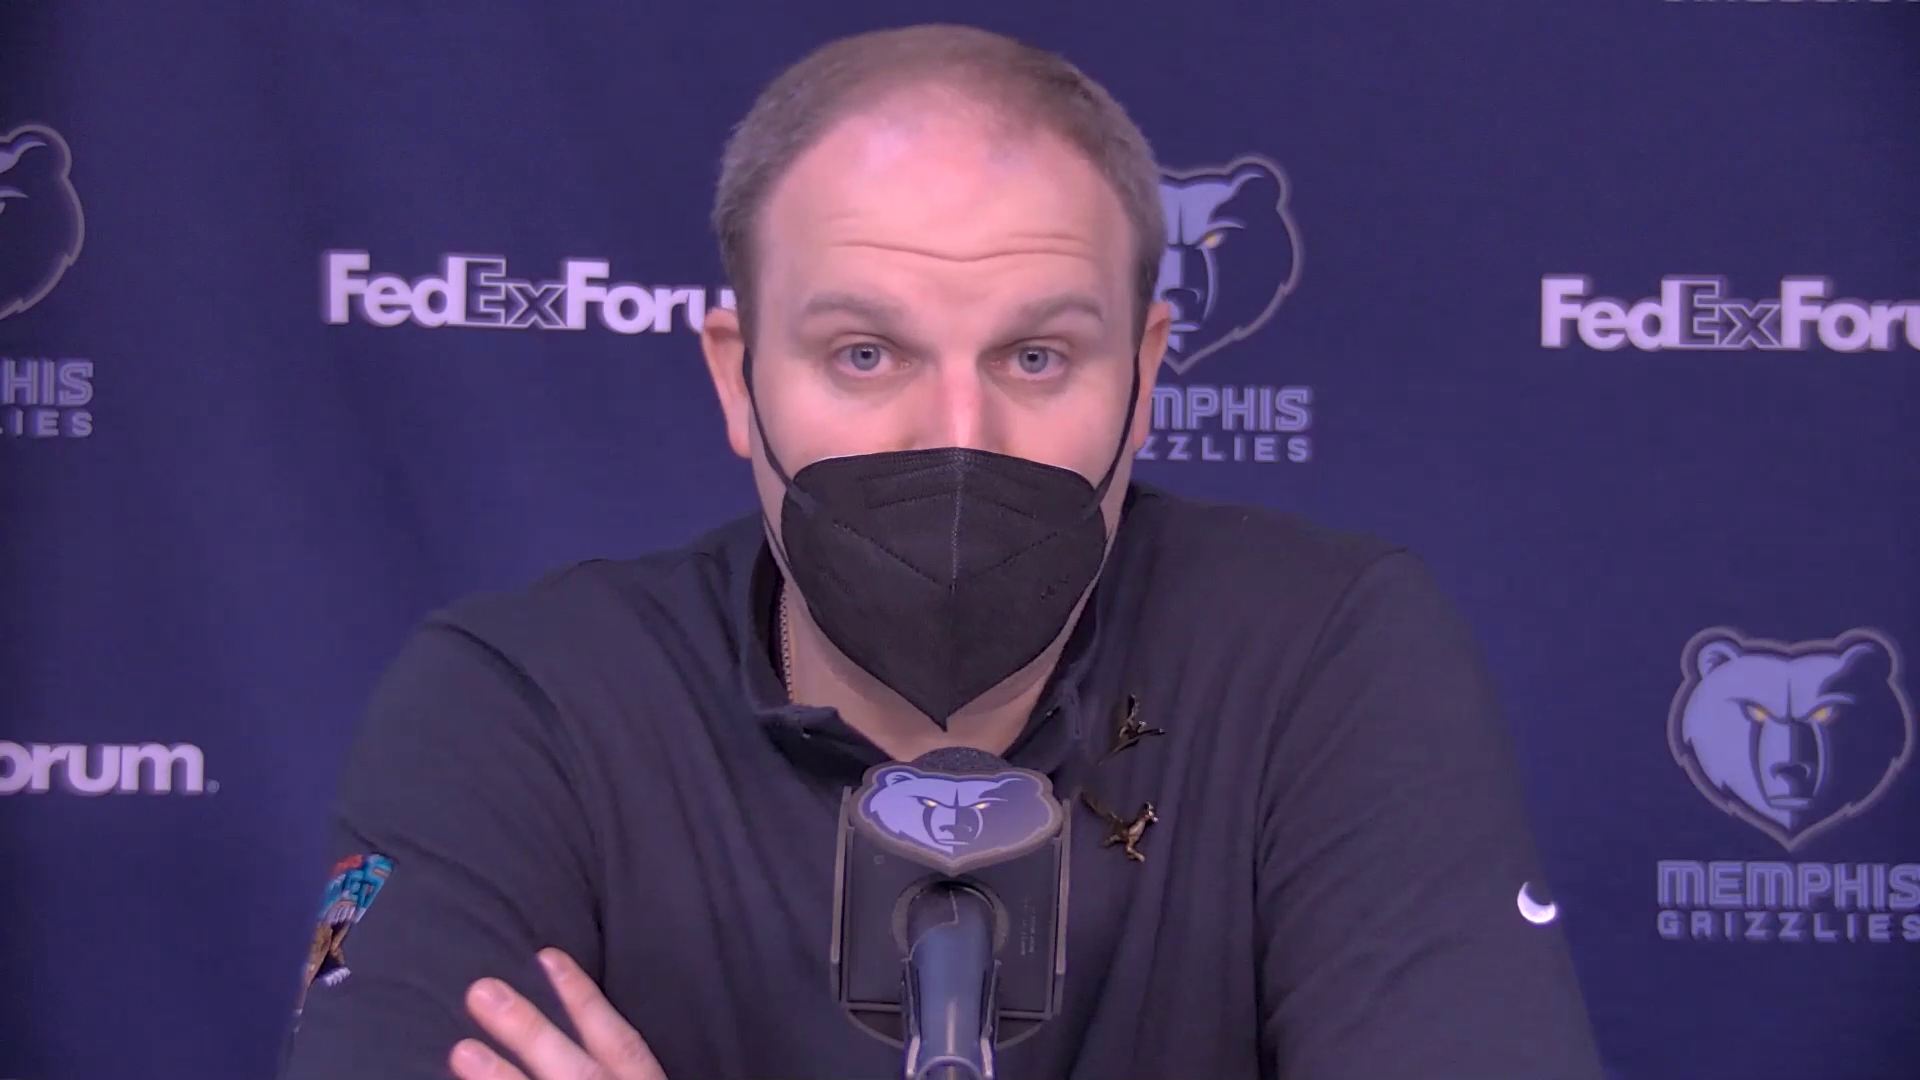 MEMvLAC: Postgame press conference 2.25.21